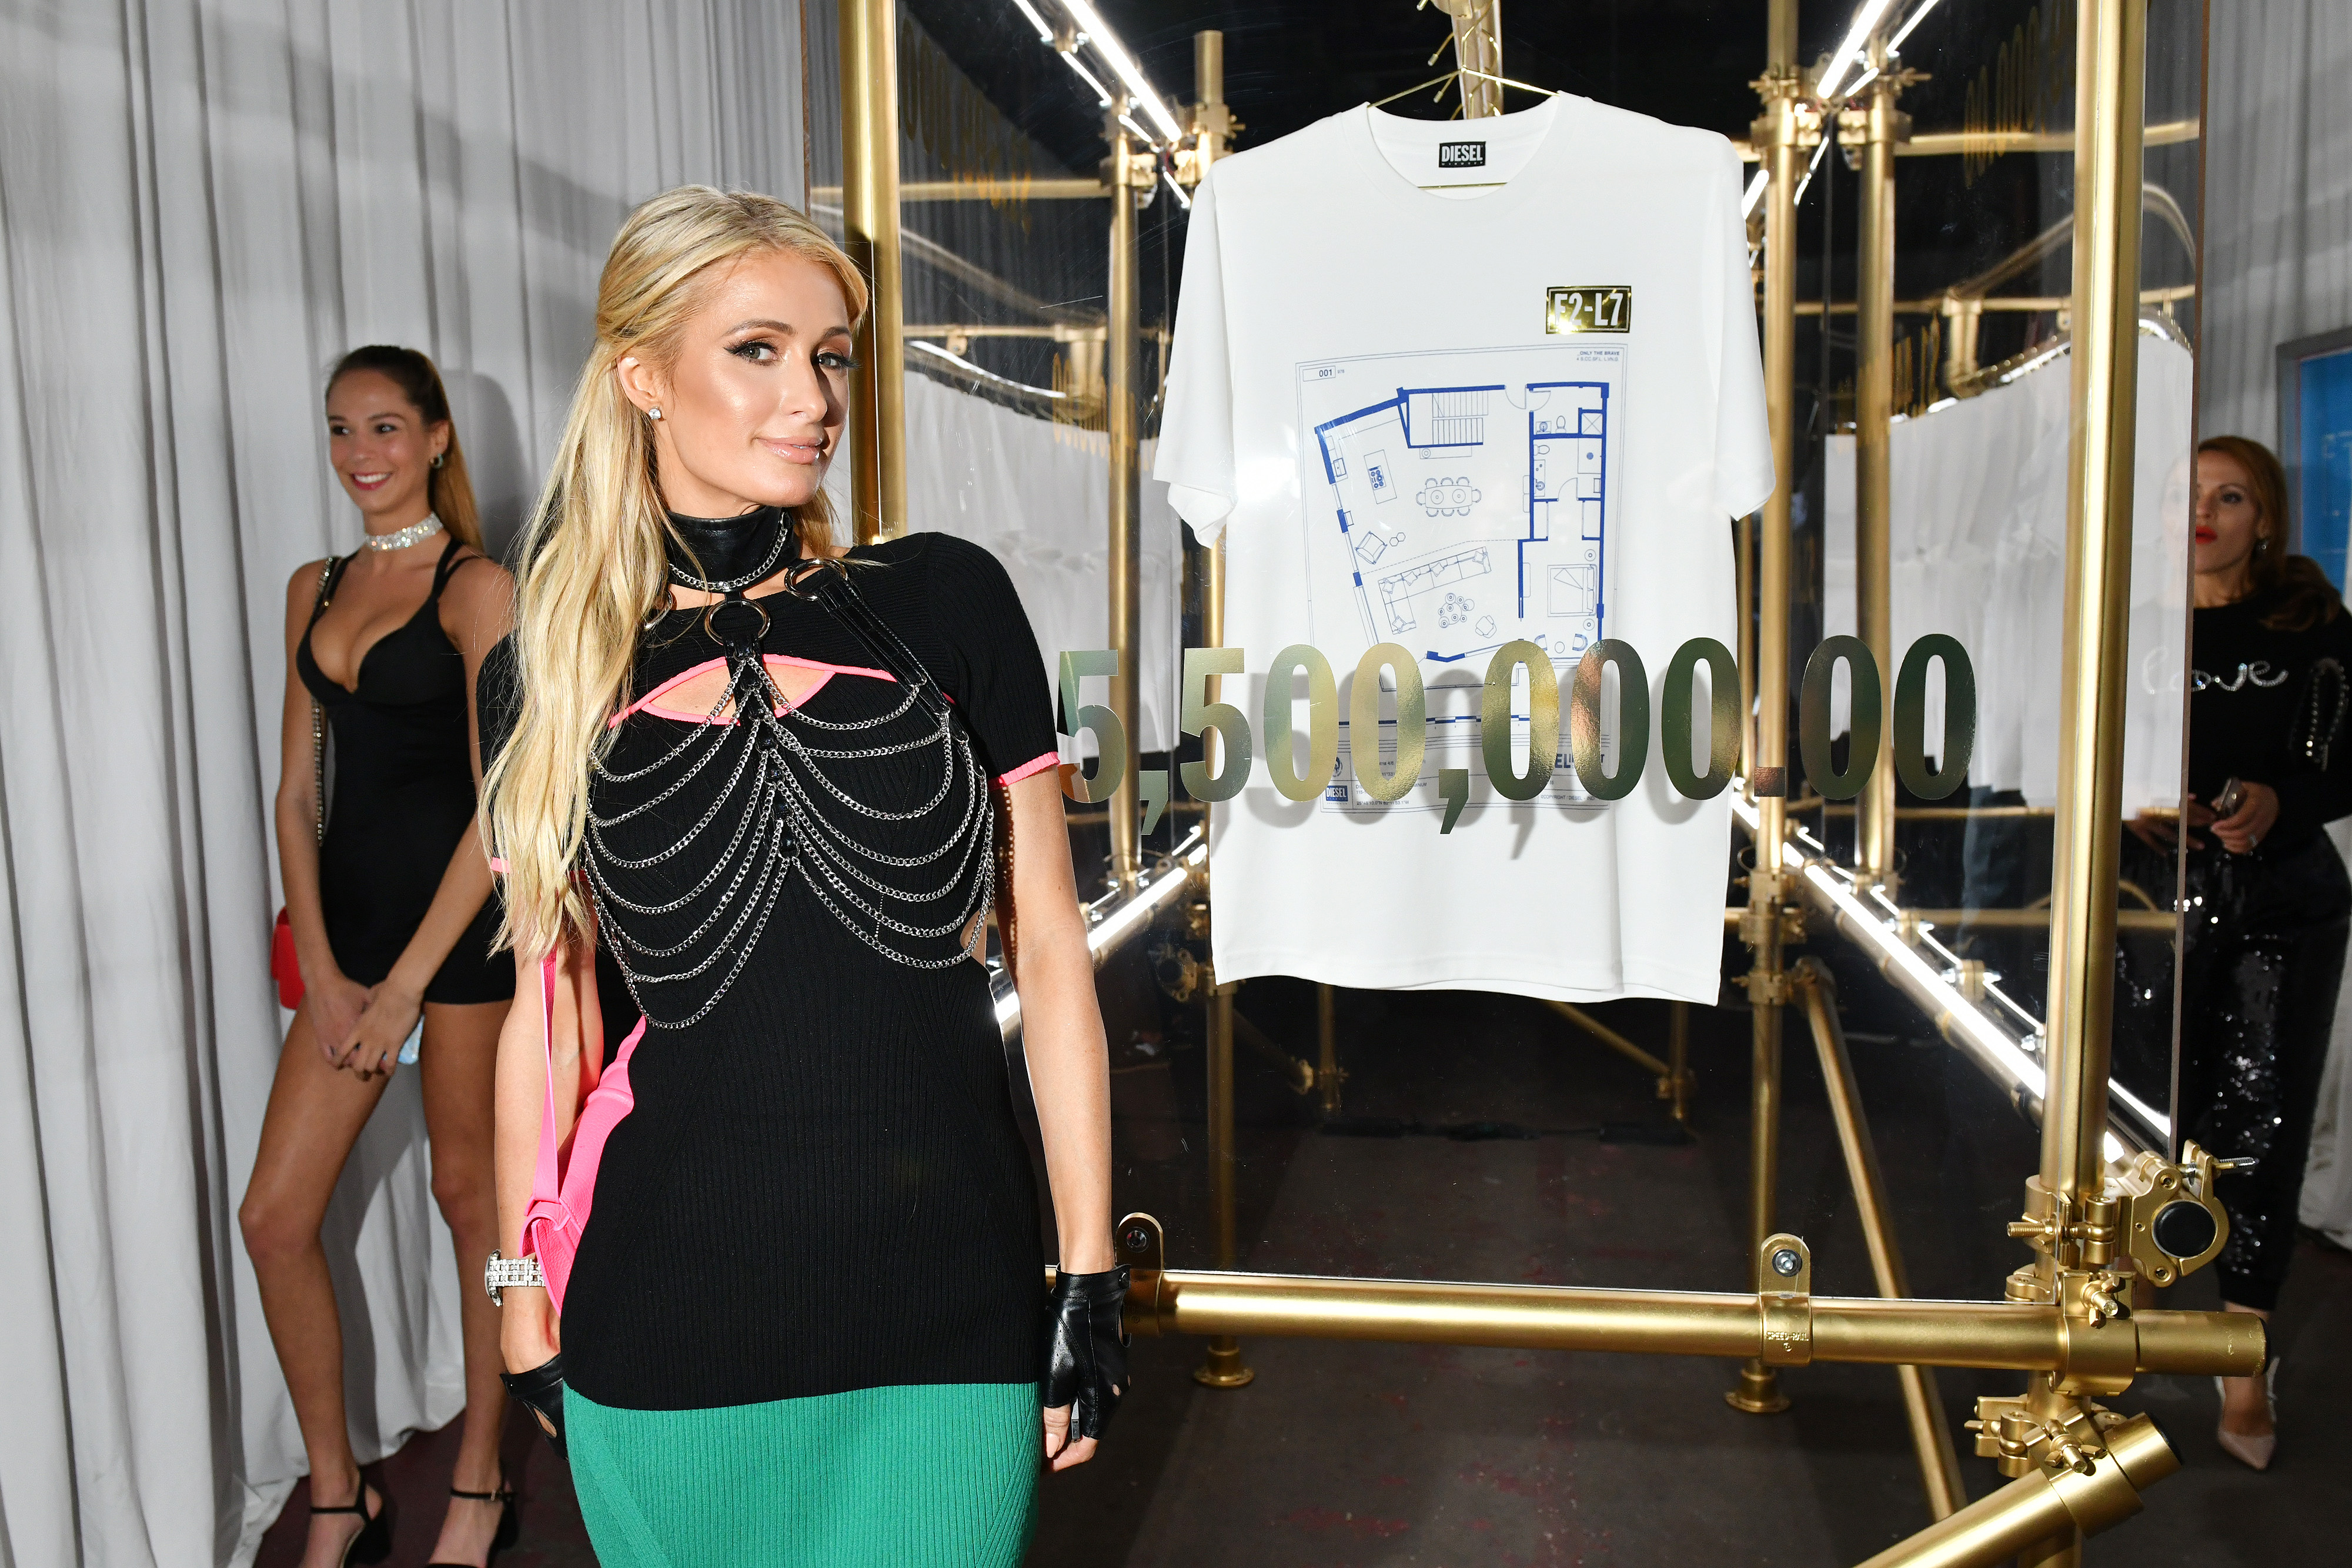 MIAMI, FLORIDA - DECEMBER 04: Paris Hilton attends as DIESEL celebrates the exclusive launch of DIESEL Wynwood 28, their first residential building, with a DJ set by Amrit at Barter on December 04, 2019 in Miami, Florida. (Photo by Craig Barritt/Getty Images for Diesel)